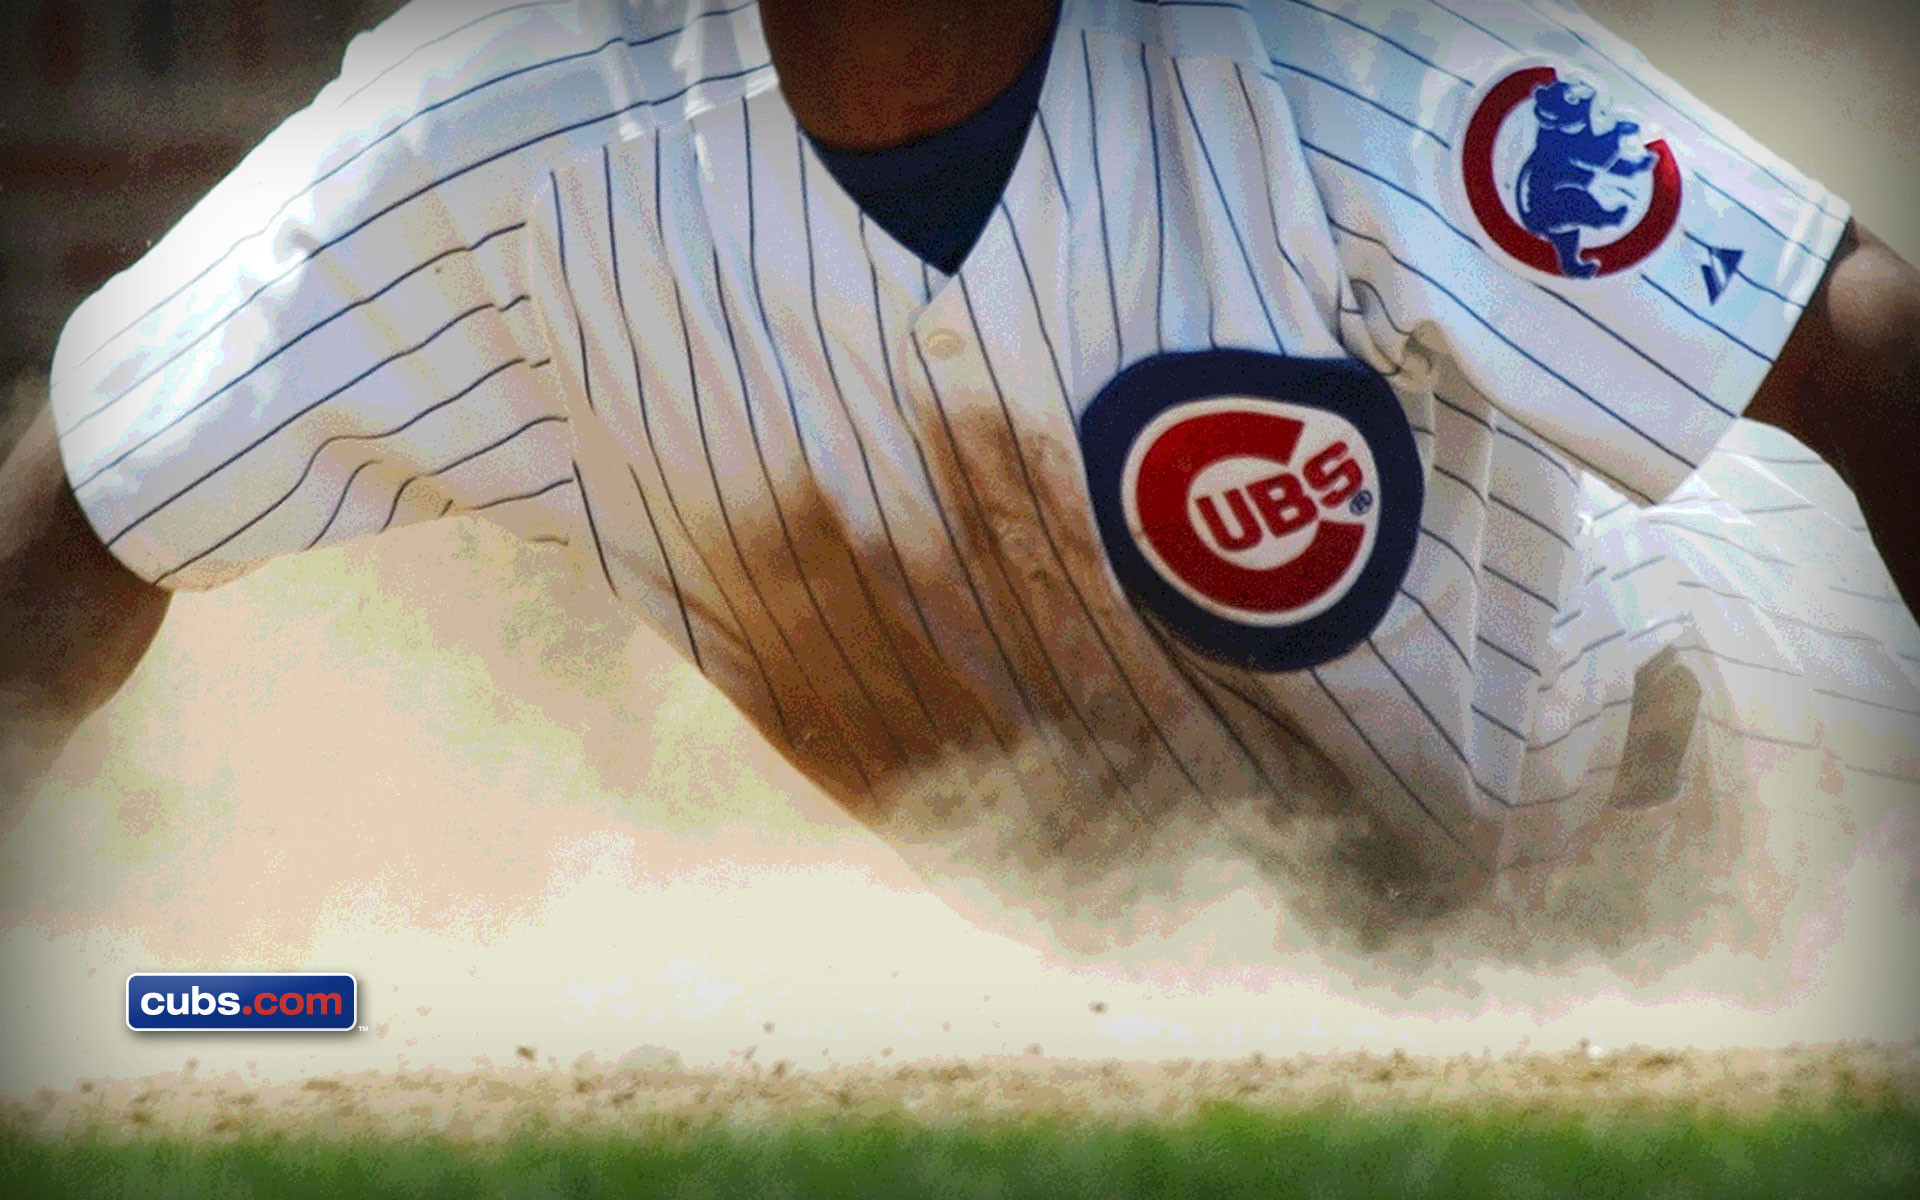 1920x1200 Chicago Cubs. 1024 x 768 · 1280 x 1024 ...